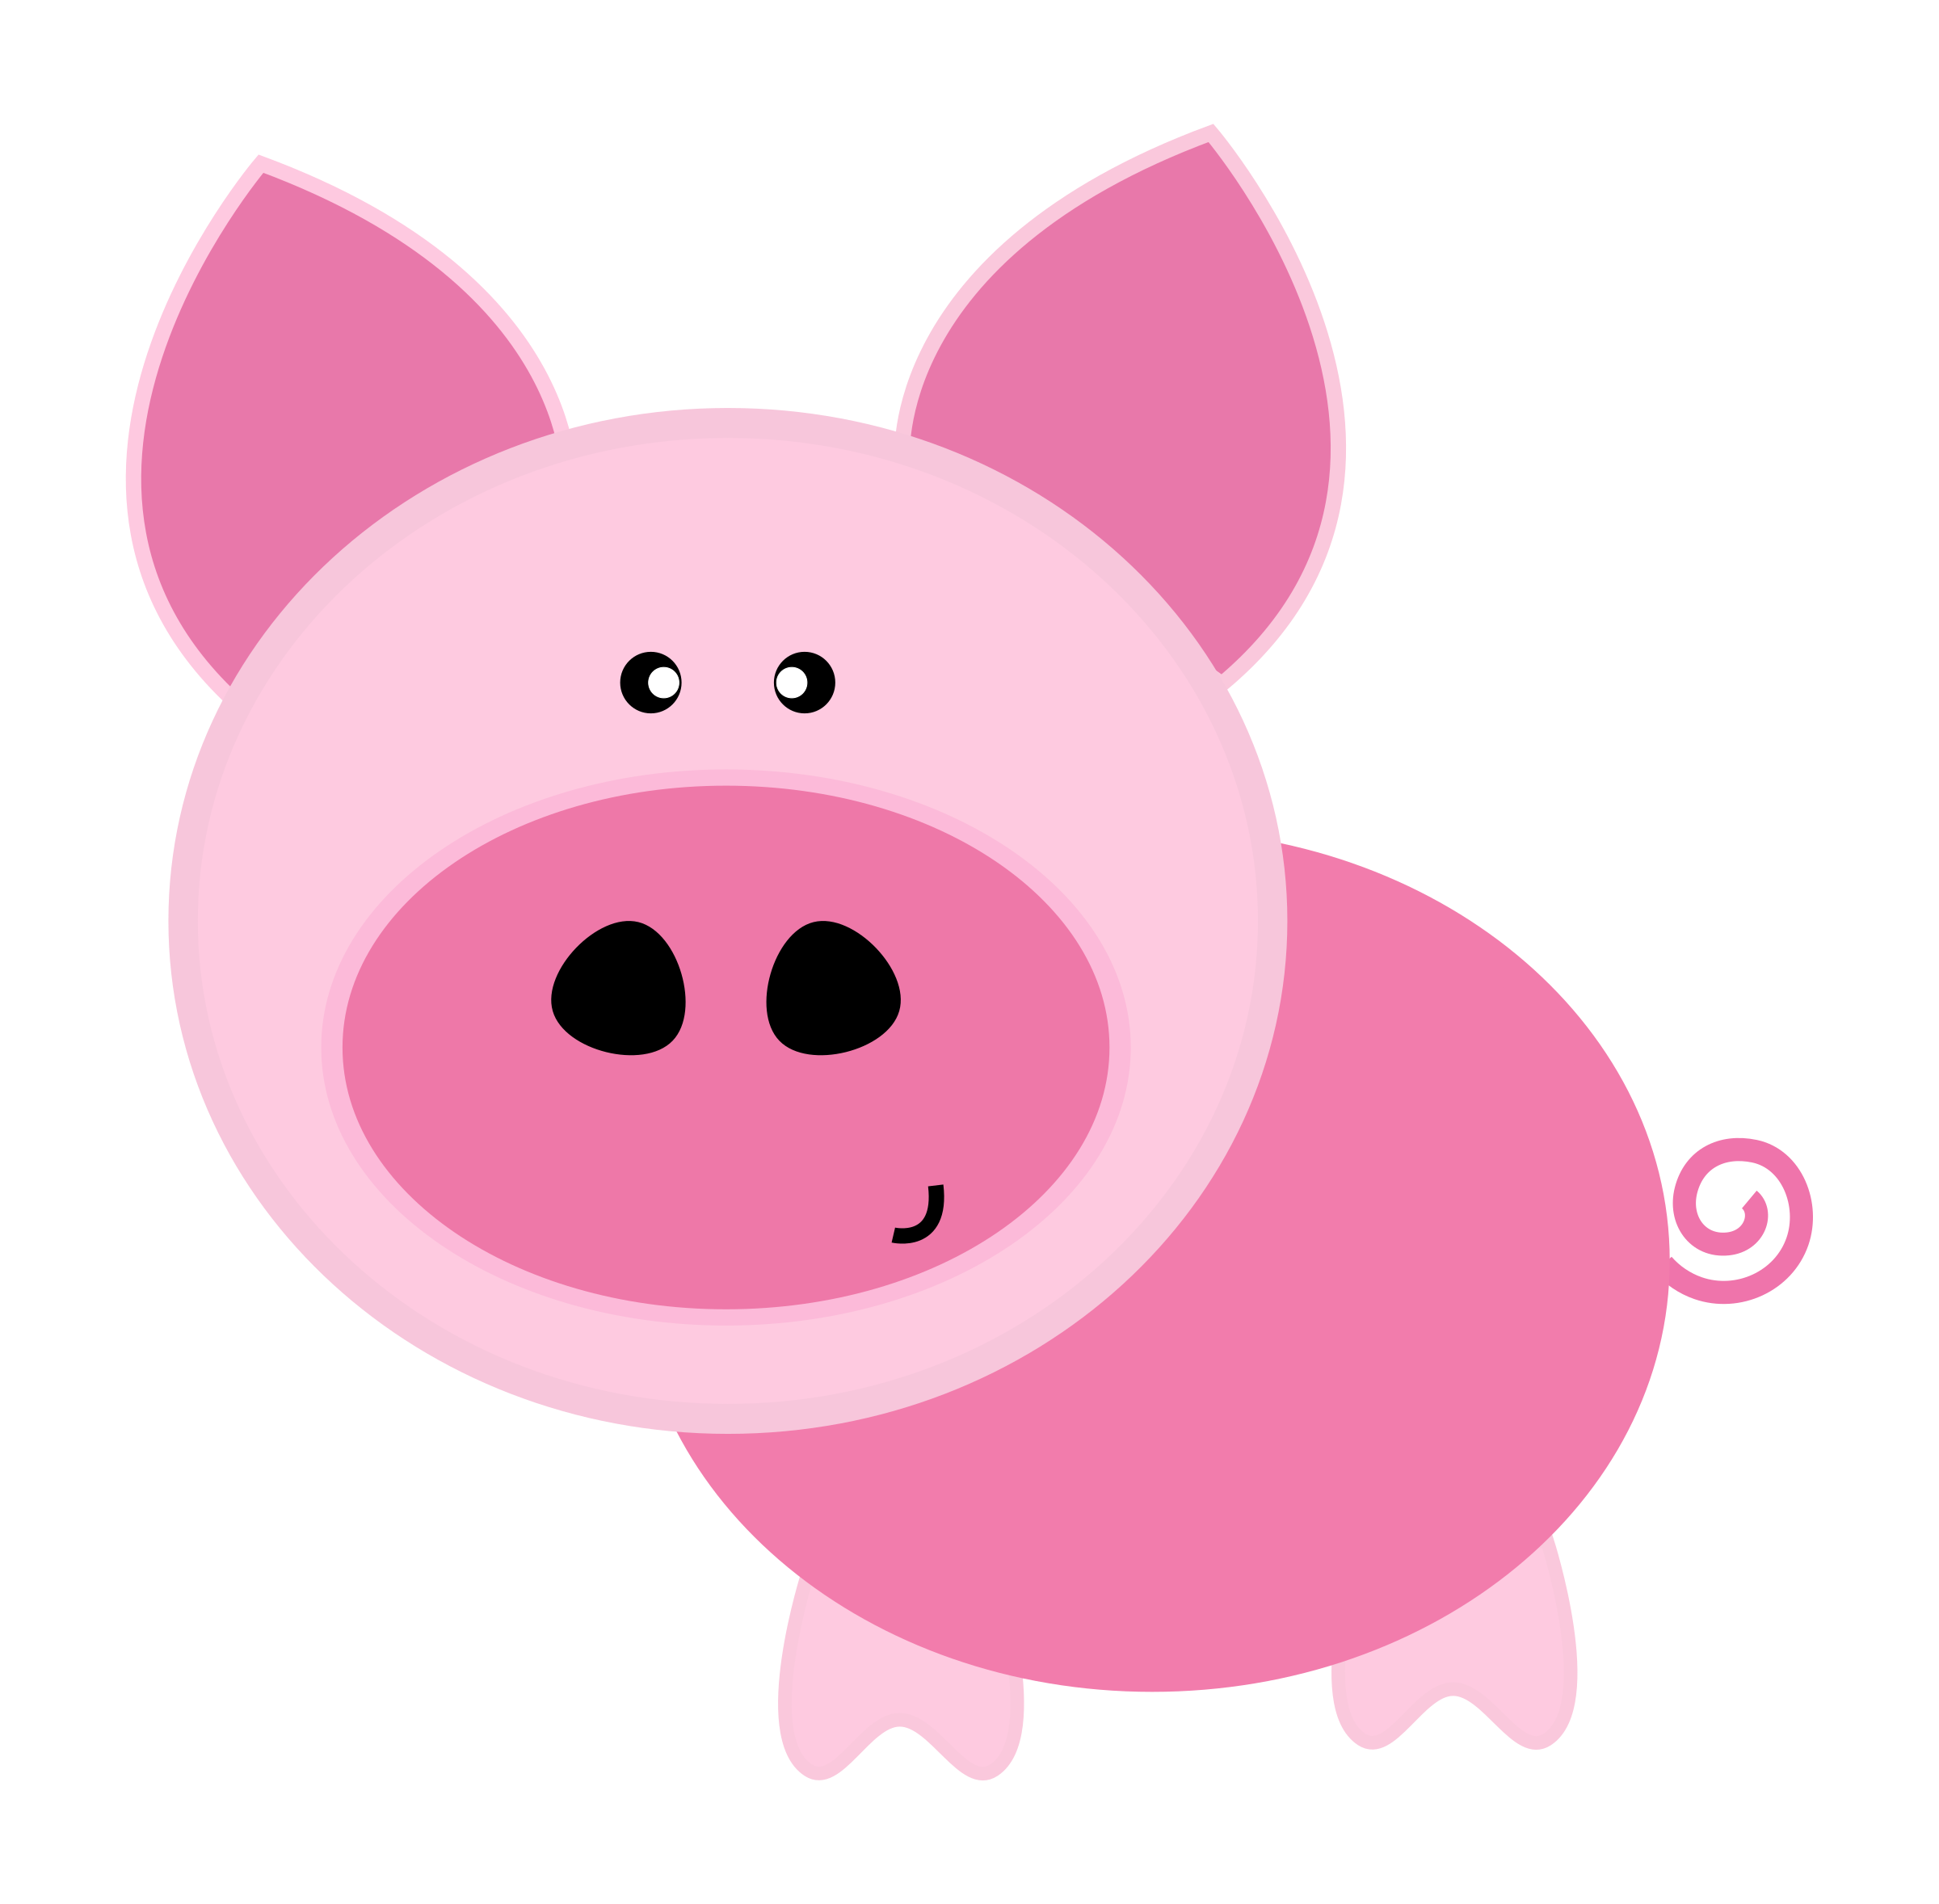 Pigs clipart swine, Pigs swine Transparent FREE for download.